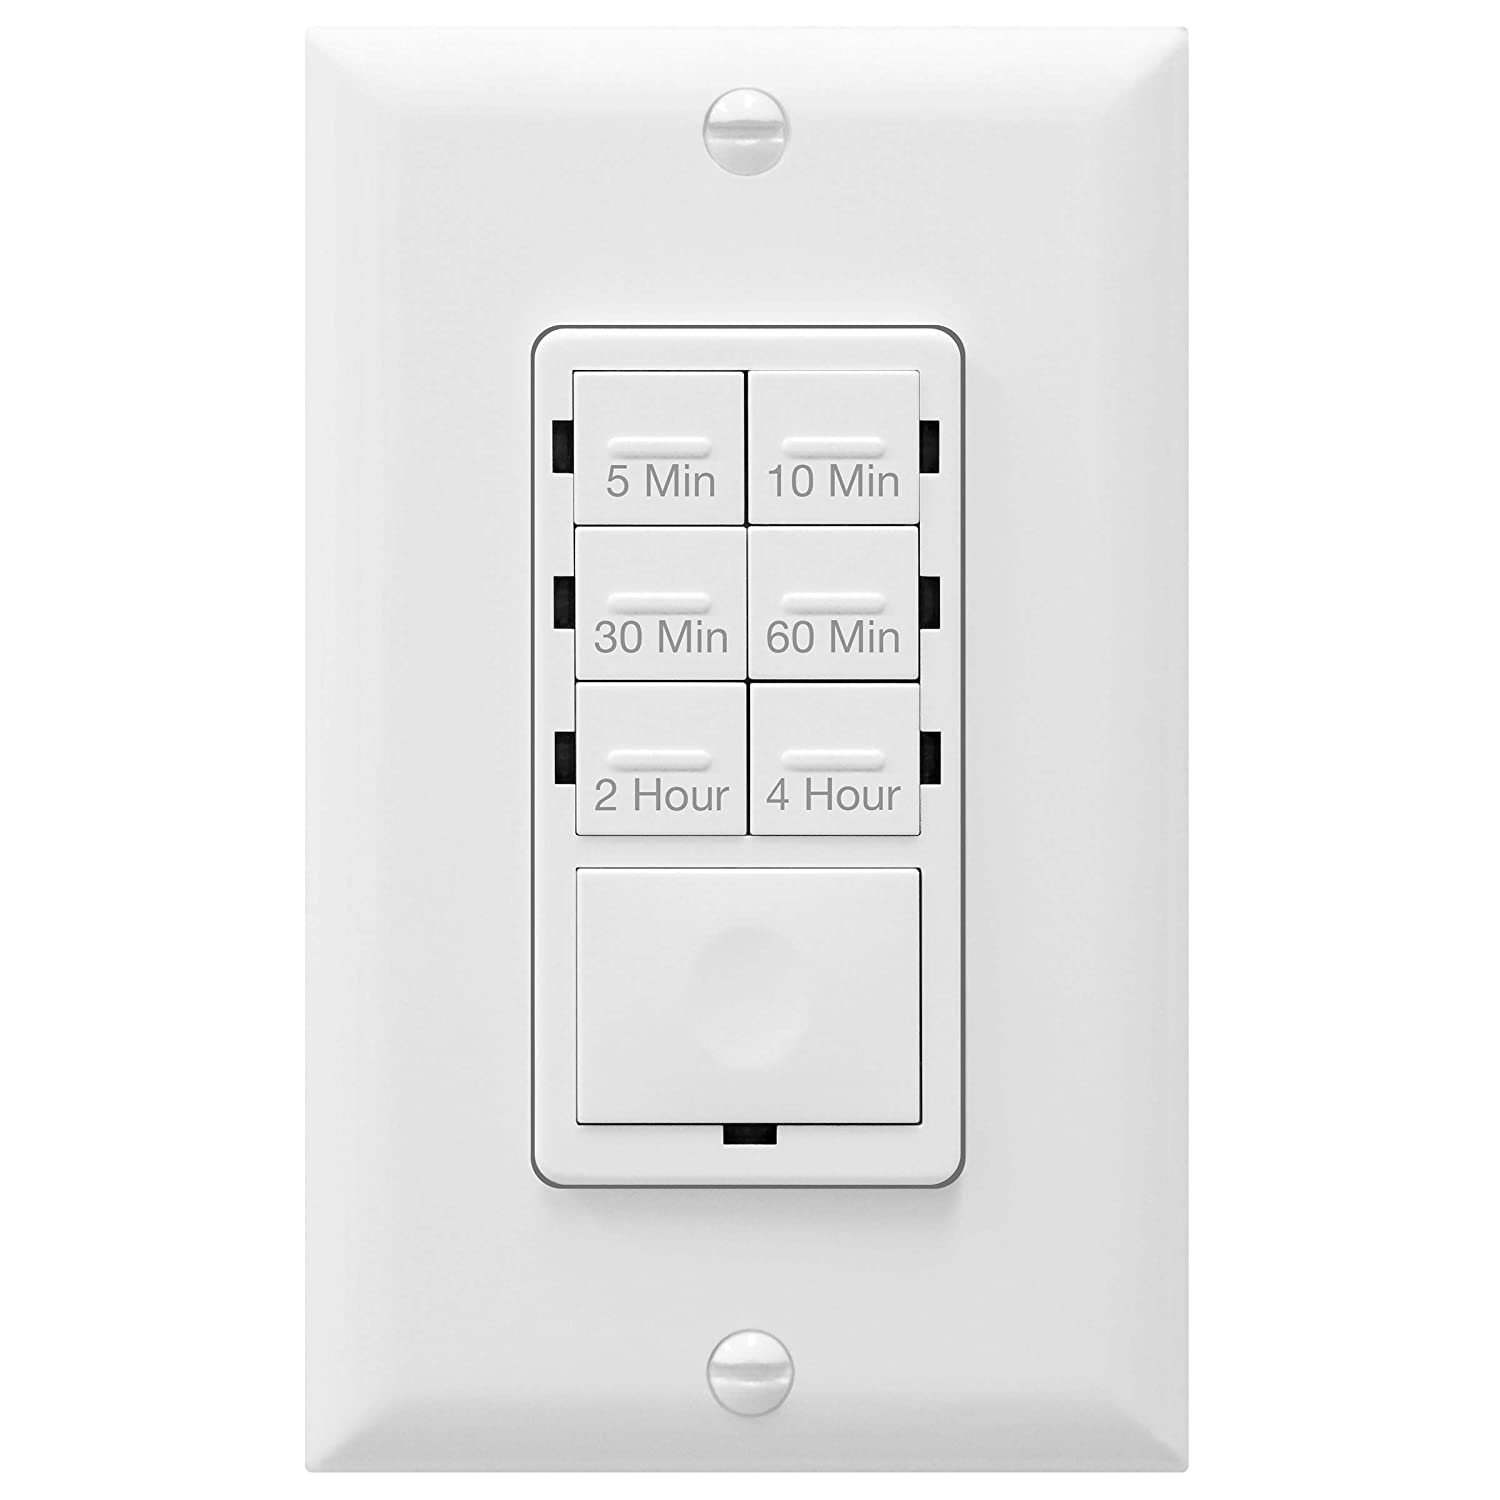 ENERLITES 4-Hour Countdown Timer Switch, 5-10-30-60 Min, 2-4 Hour, For Bathroom Fans, Heaters, Lights, LED Indicator, 120VAC 800W, No Neutral Wire Required, UL Listed, HET06-J-W, White